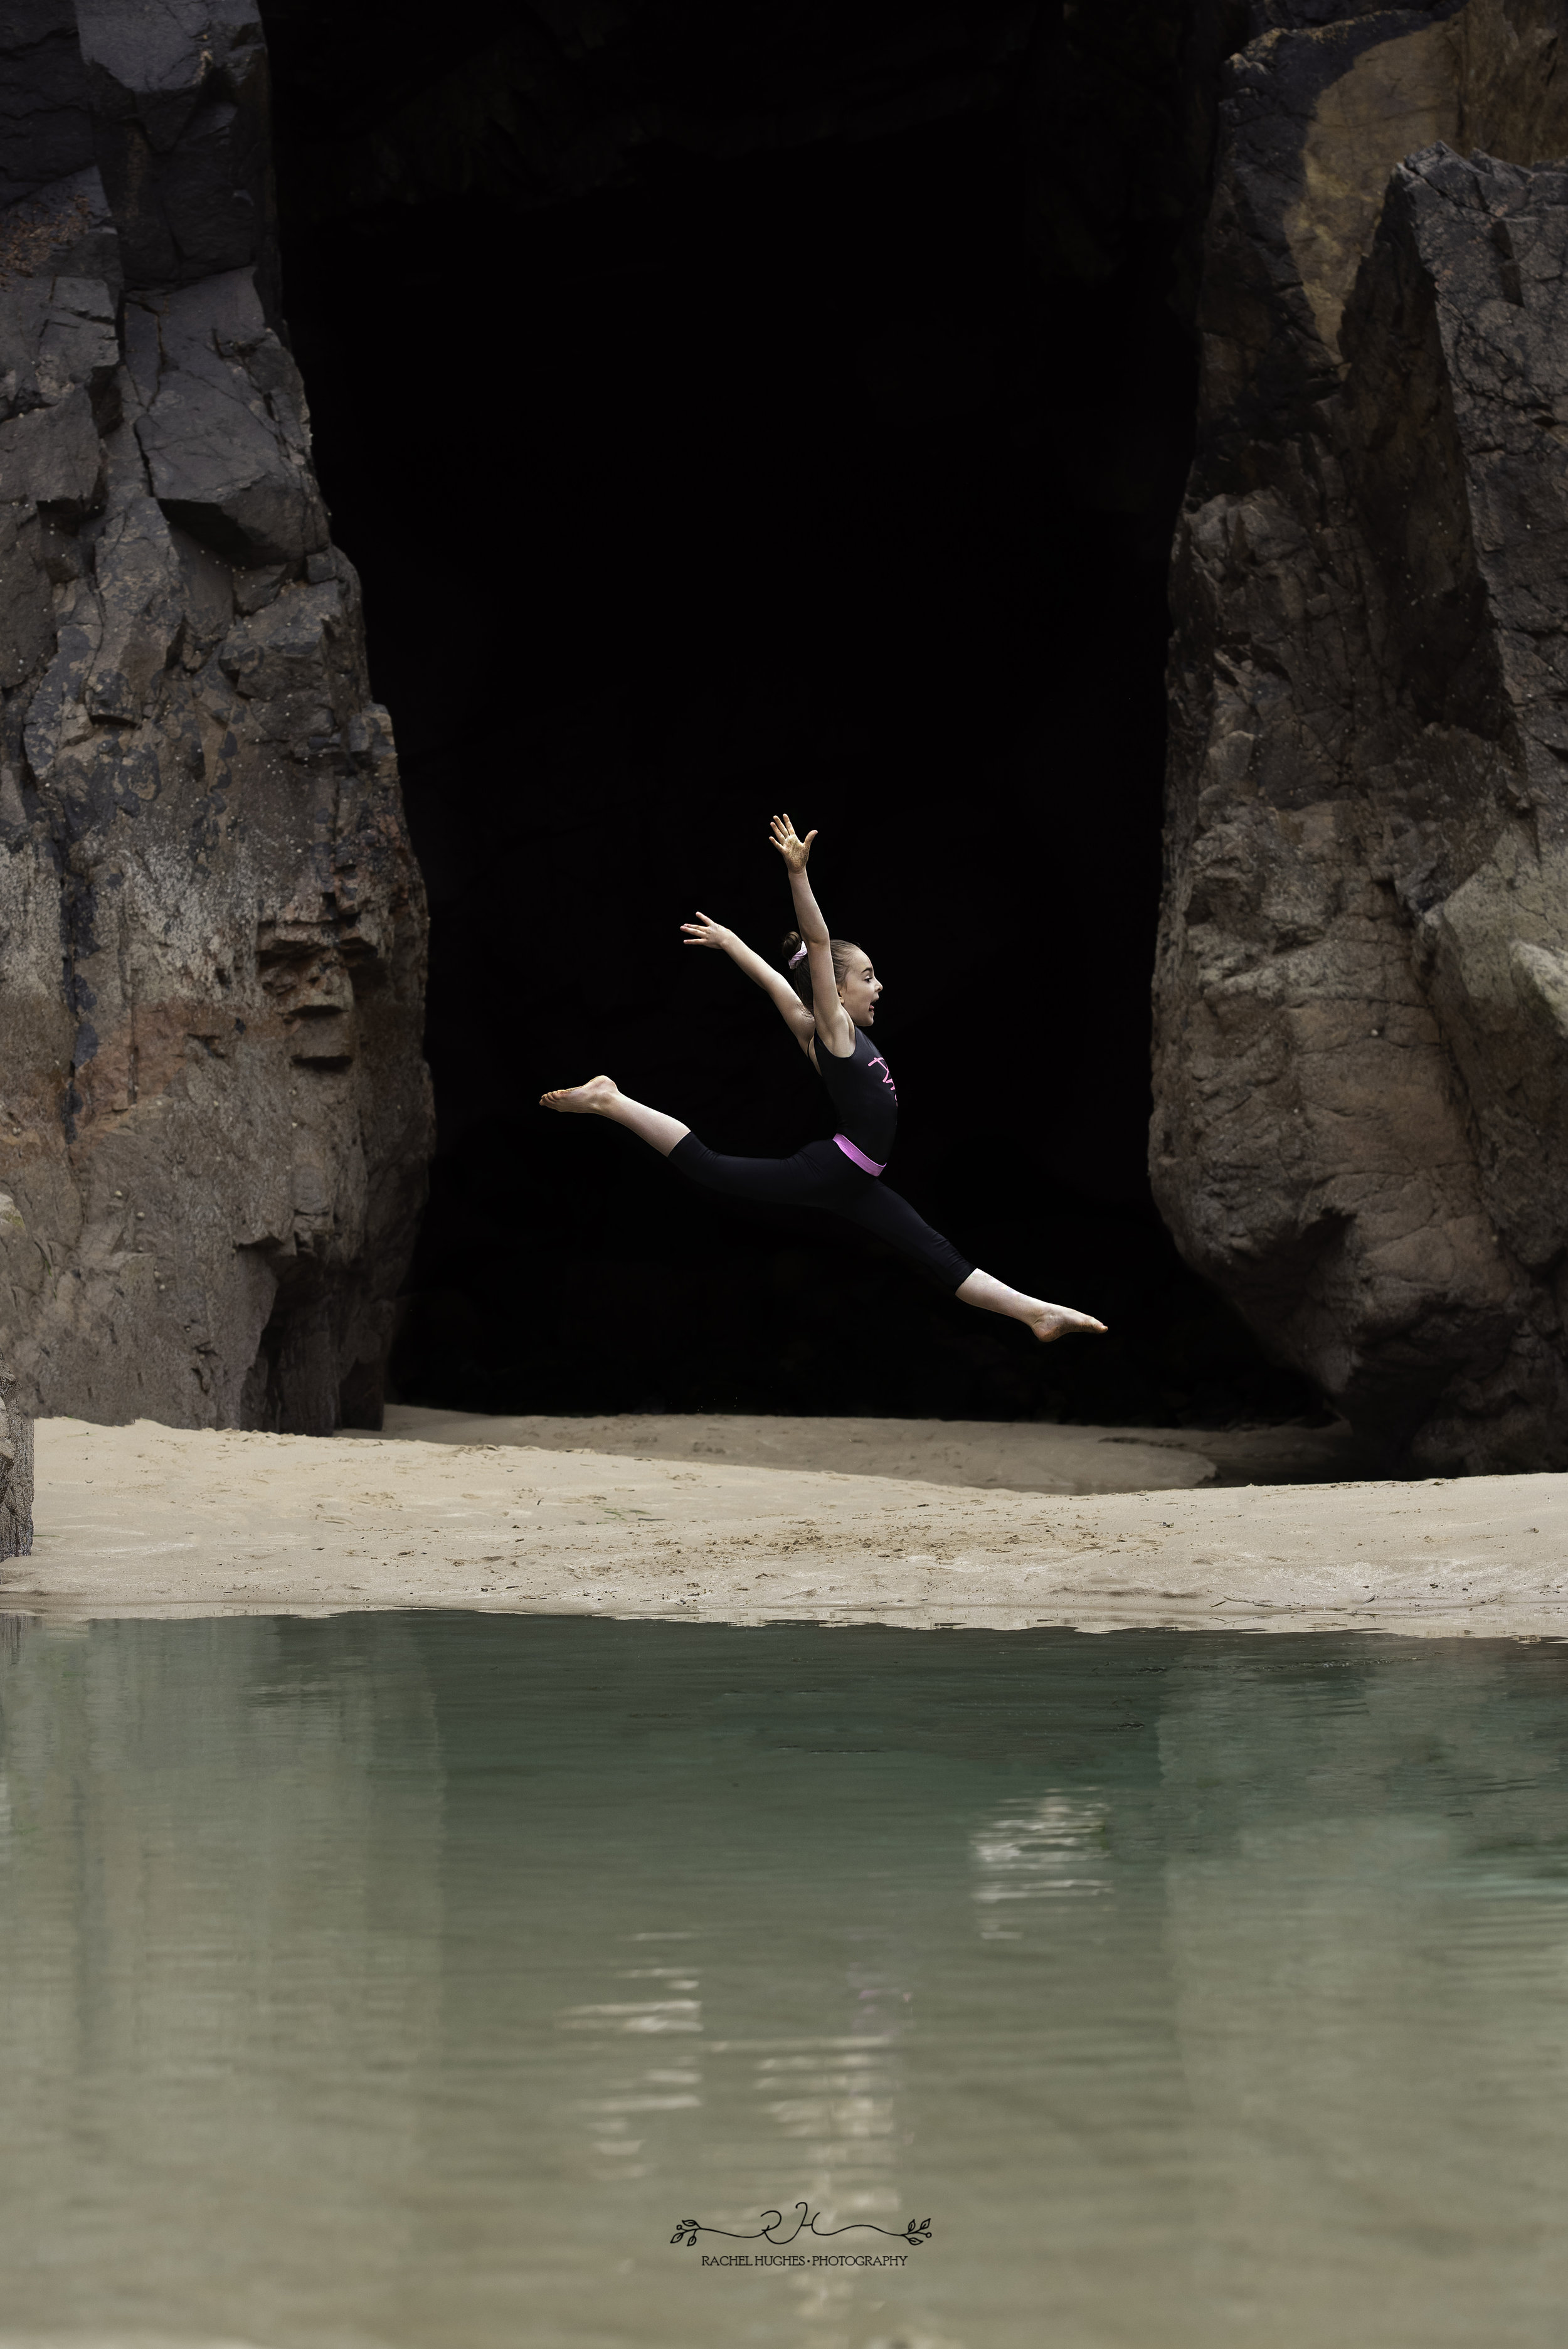 Jersey photographer - gymnast leaping in sea cave